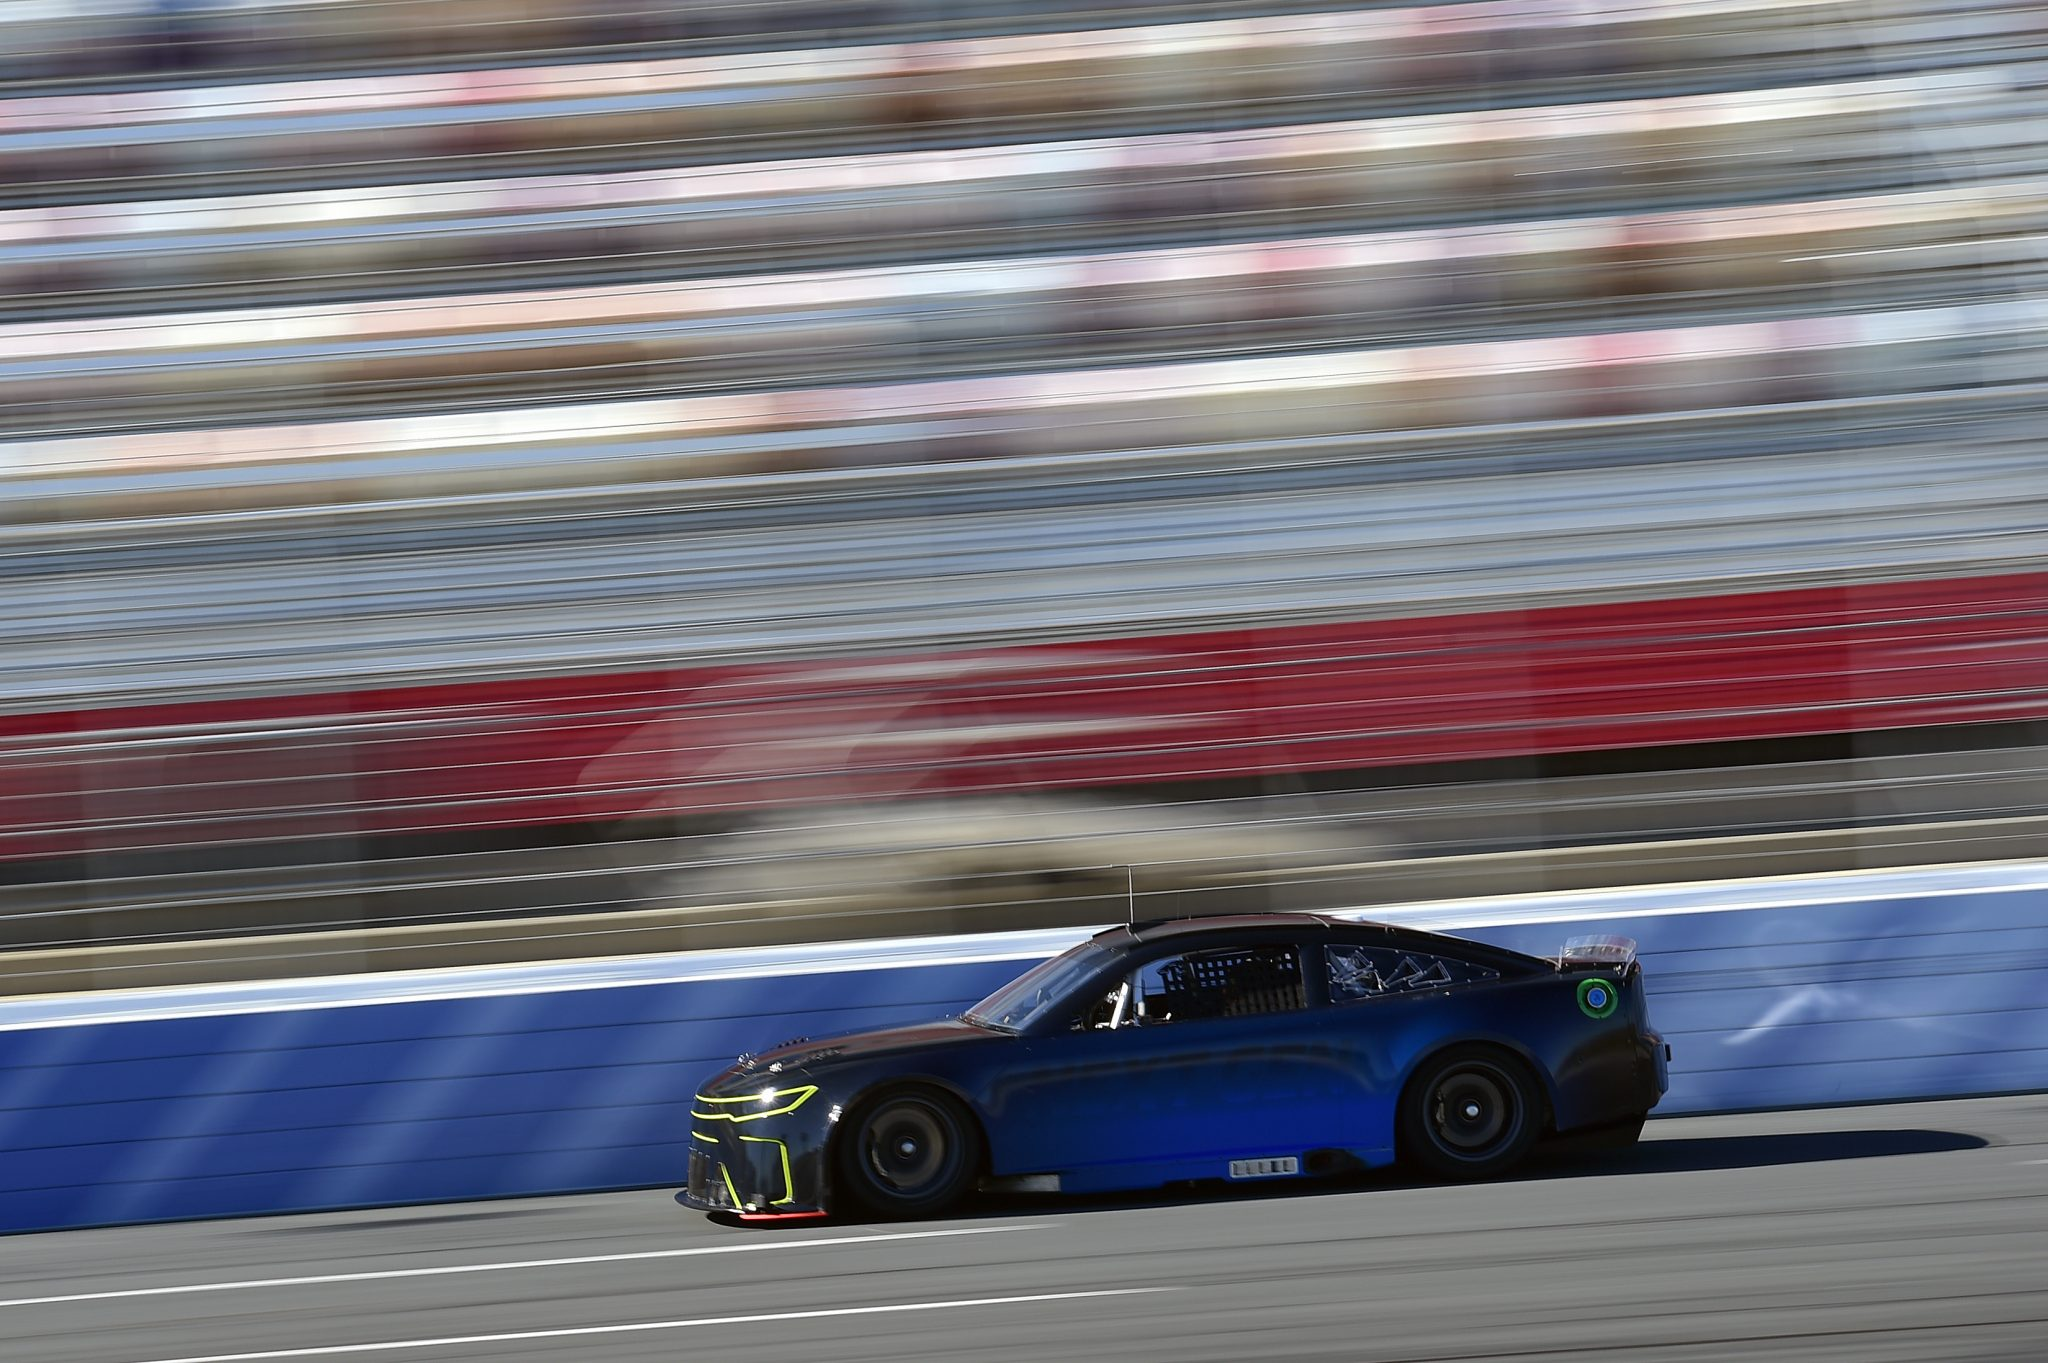 CONCORD, NORTH CAROLINA - NOVEMBER 16: Kurt Busch drives the NASCAR Next Gen car during the NASCAR Cup Series test at Charlotte Motor Speedway on November 16, 2020 in Concord, North Carolina. (Photo by Jared C. Tilton/Getty Images) | Getty Images